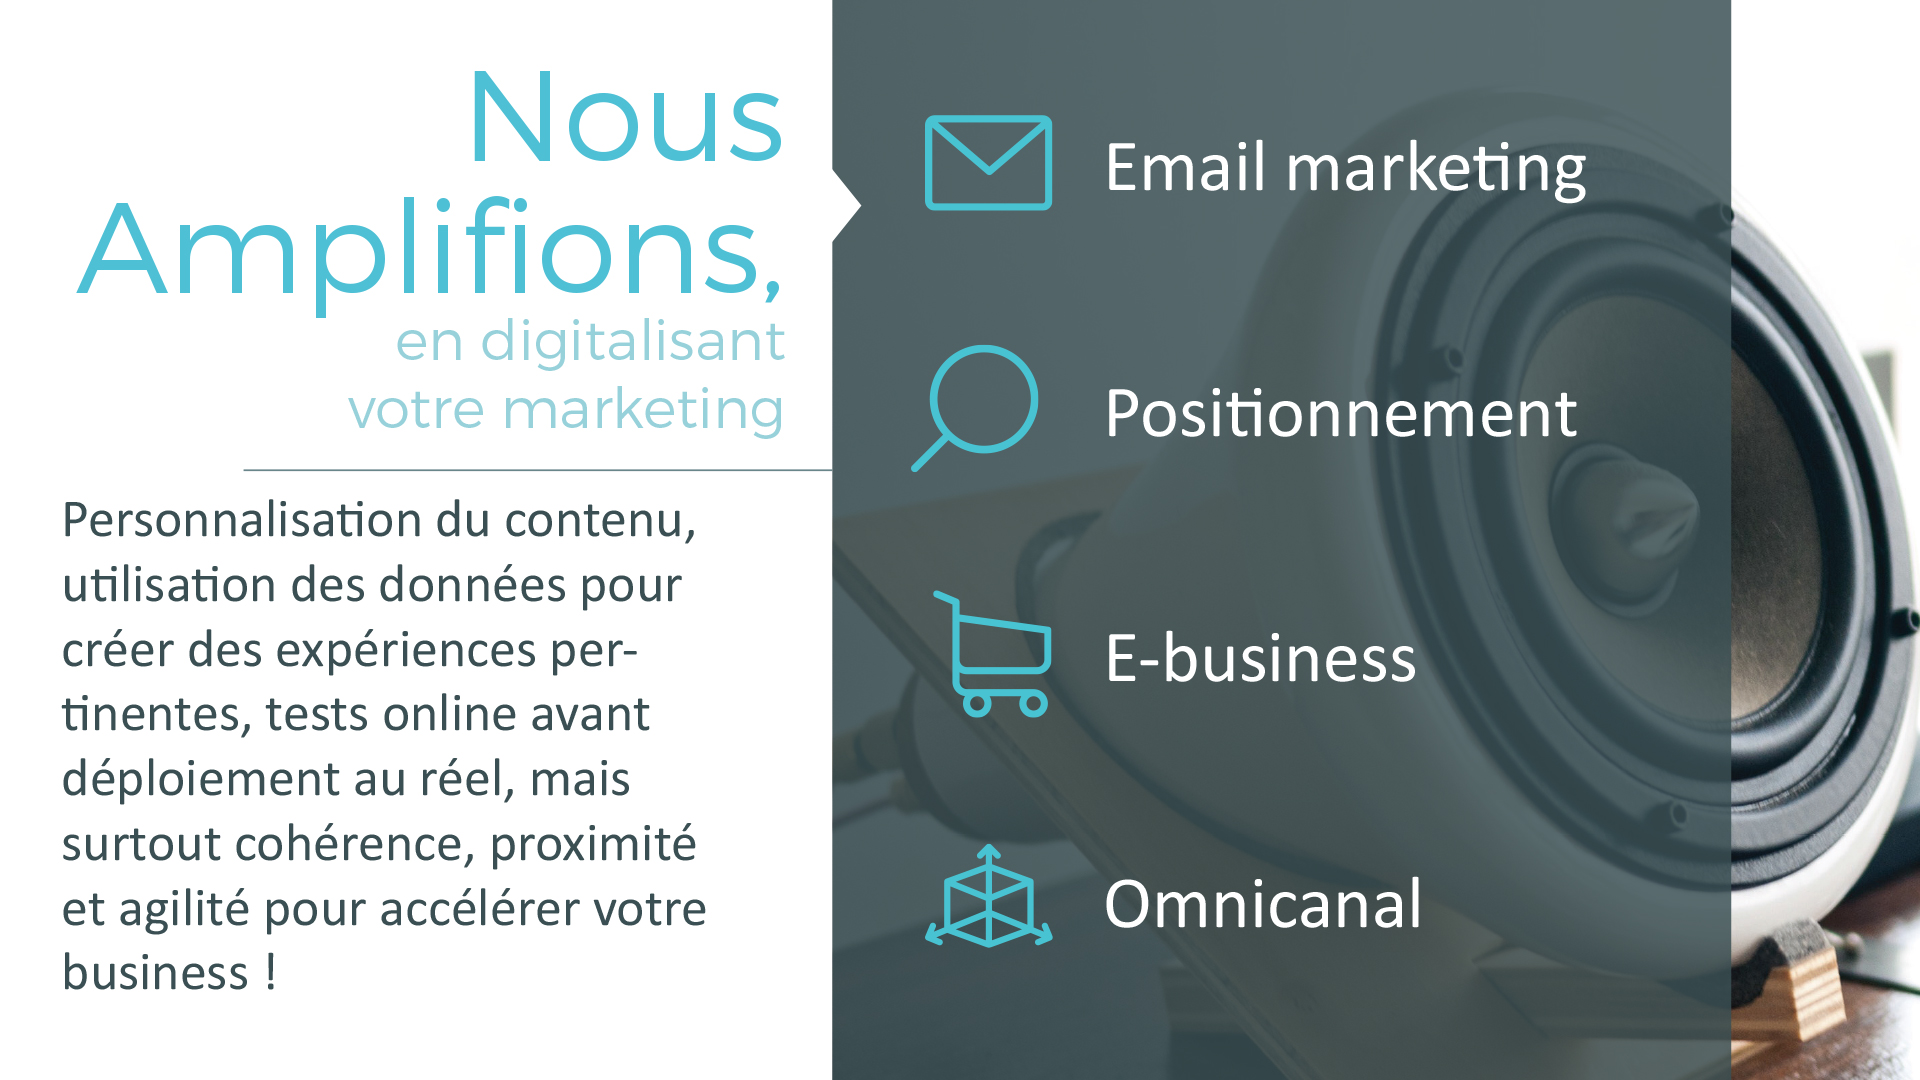 Nous Amplifions, en digitalisant votre marketing : Email marketing - Positionnement - E-business - Omnicanal